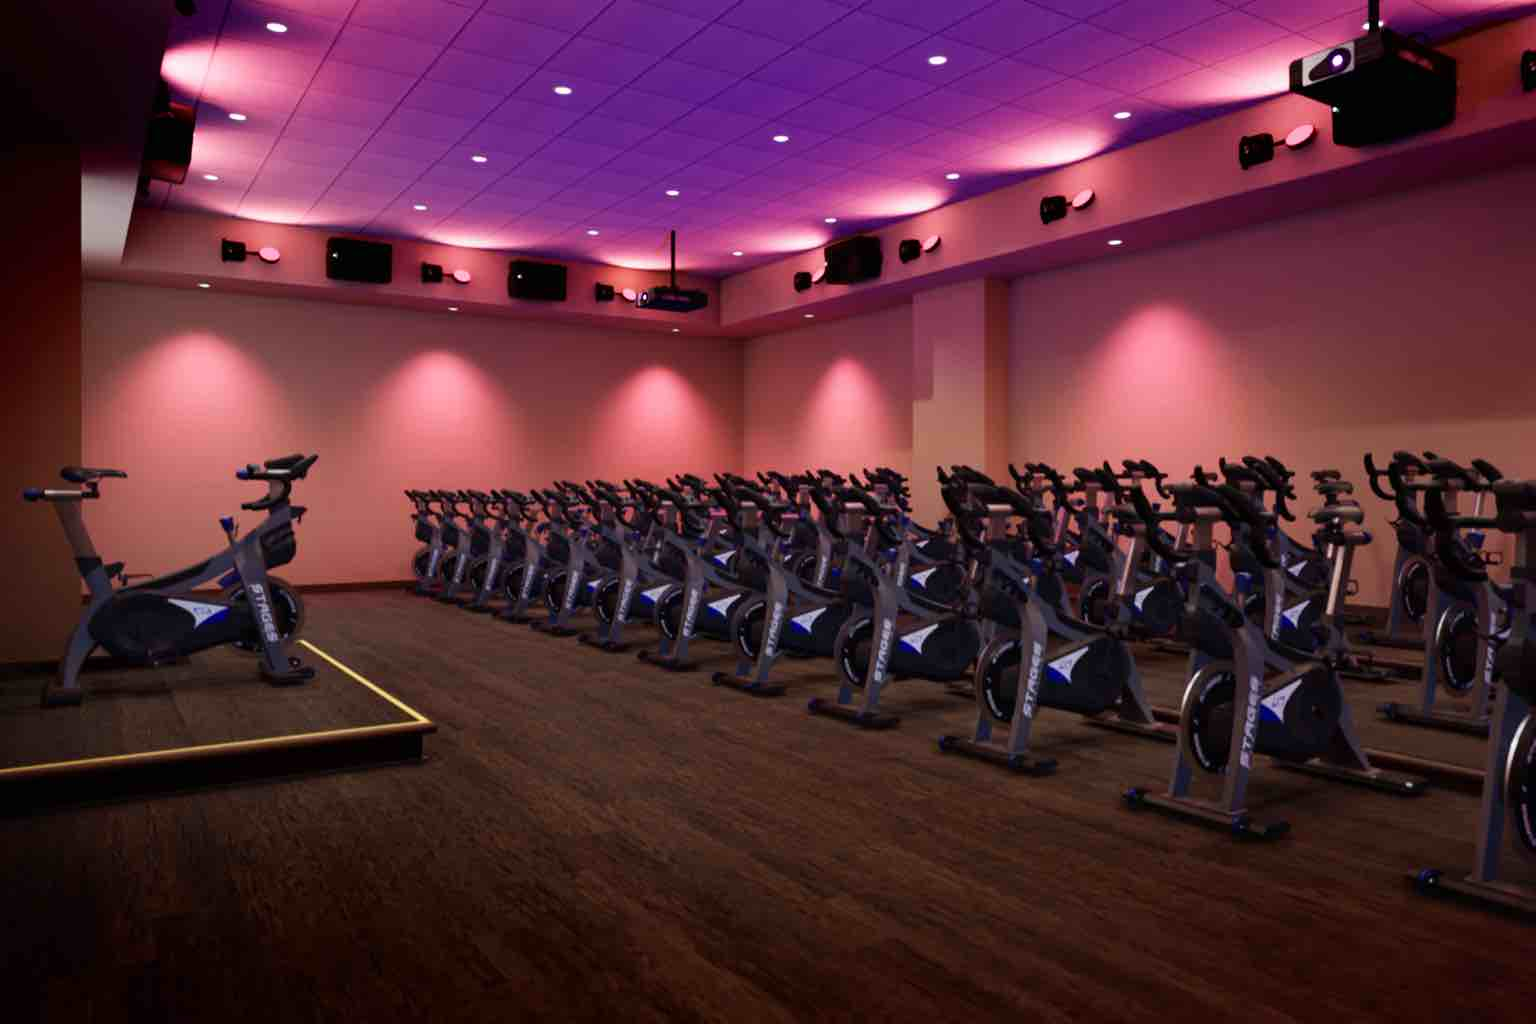 a dimly lit indoor cycle studio with stationary bikes